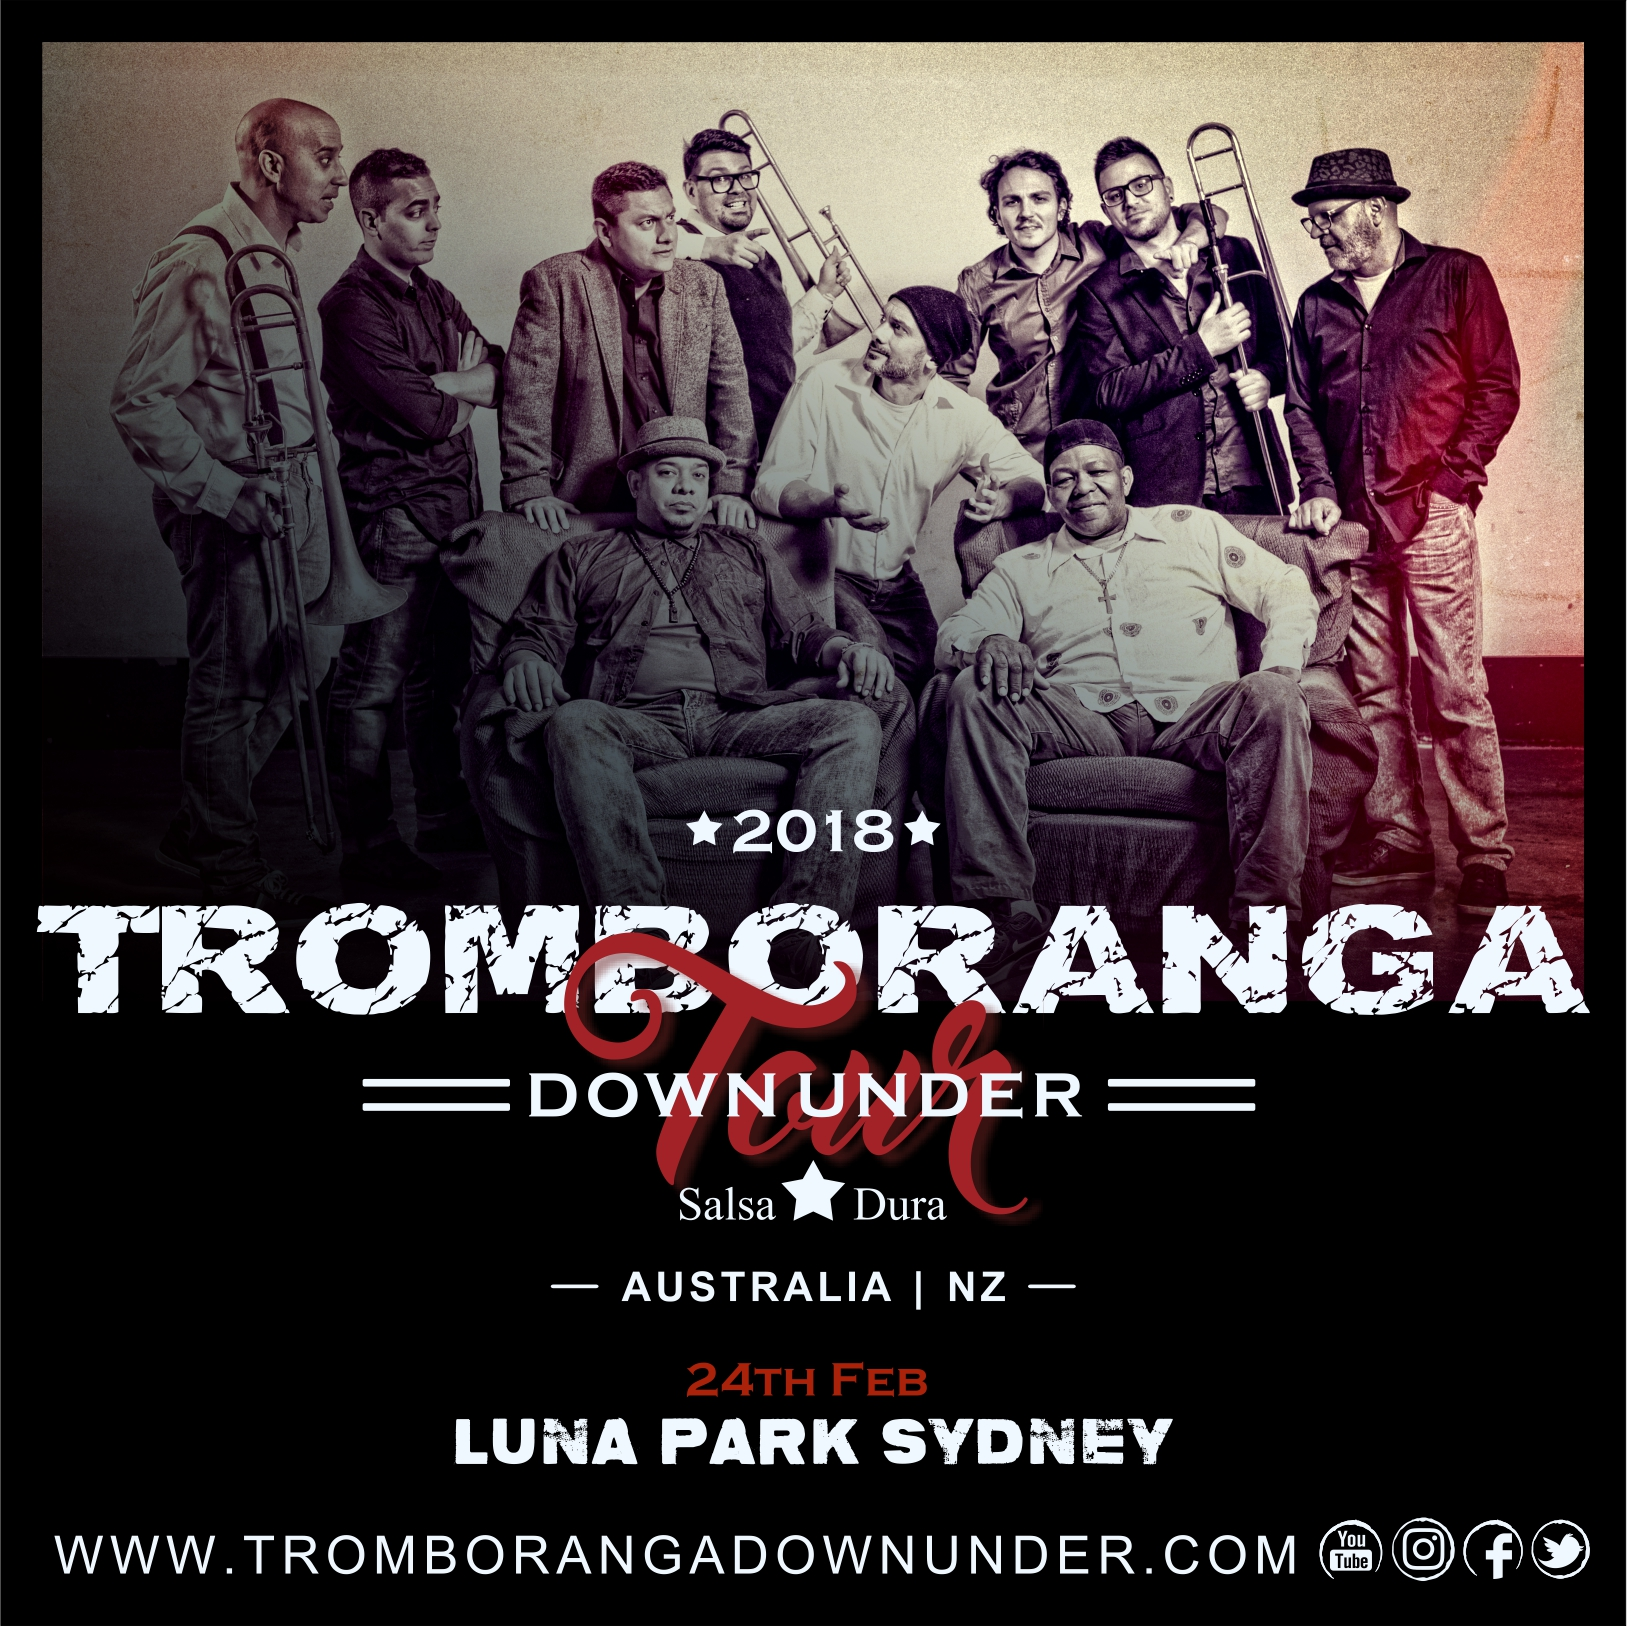 TROMBORANGA DOWN UNDER TOUR